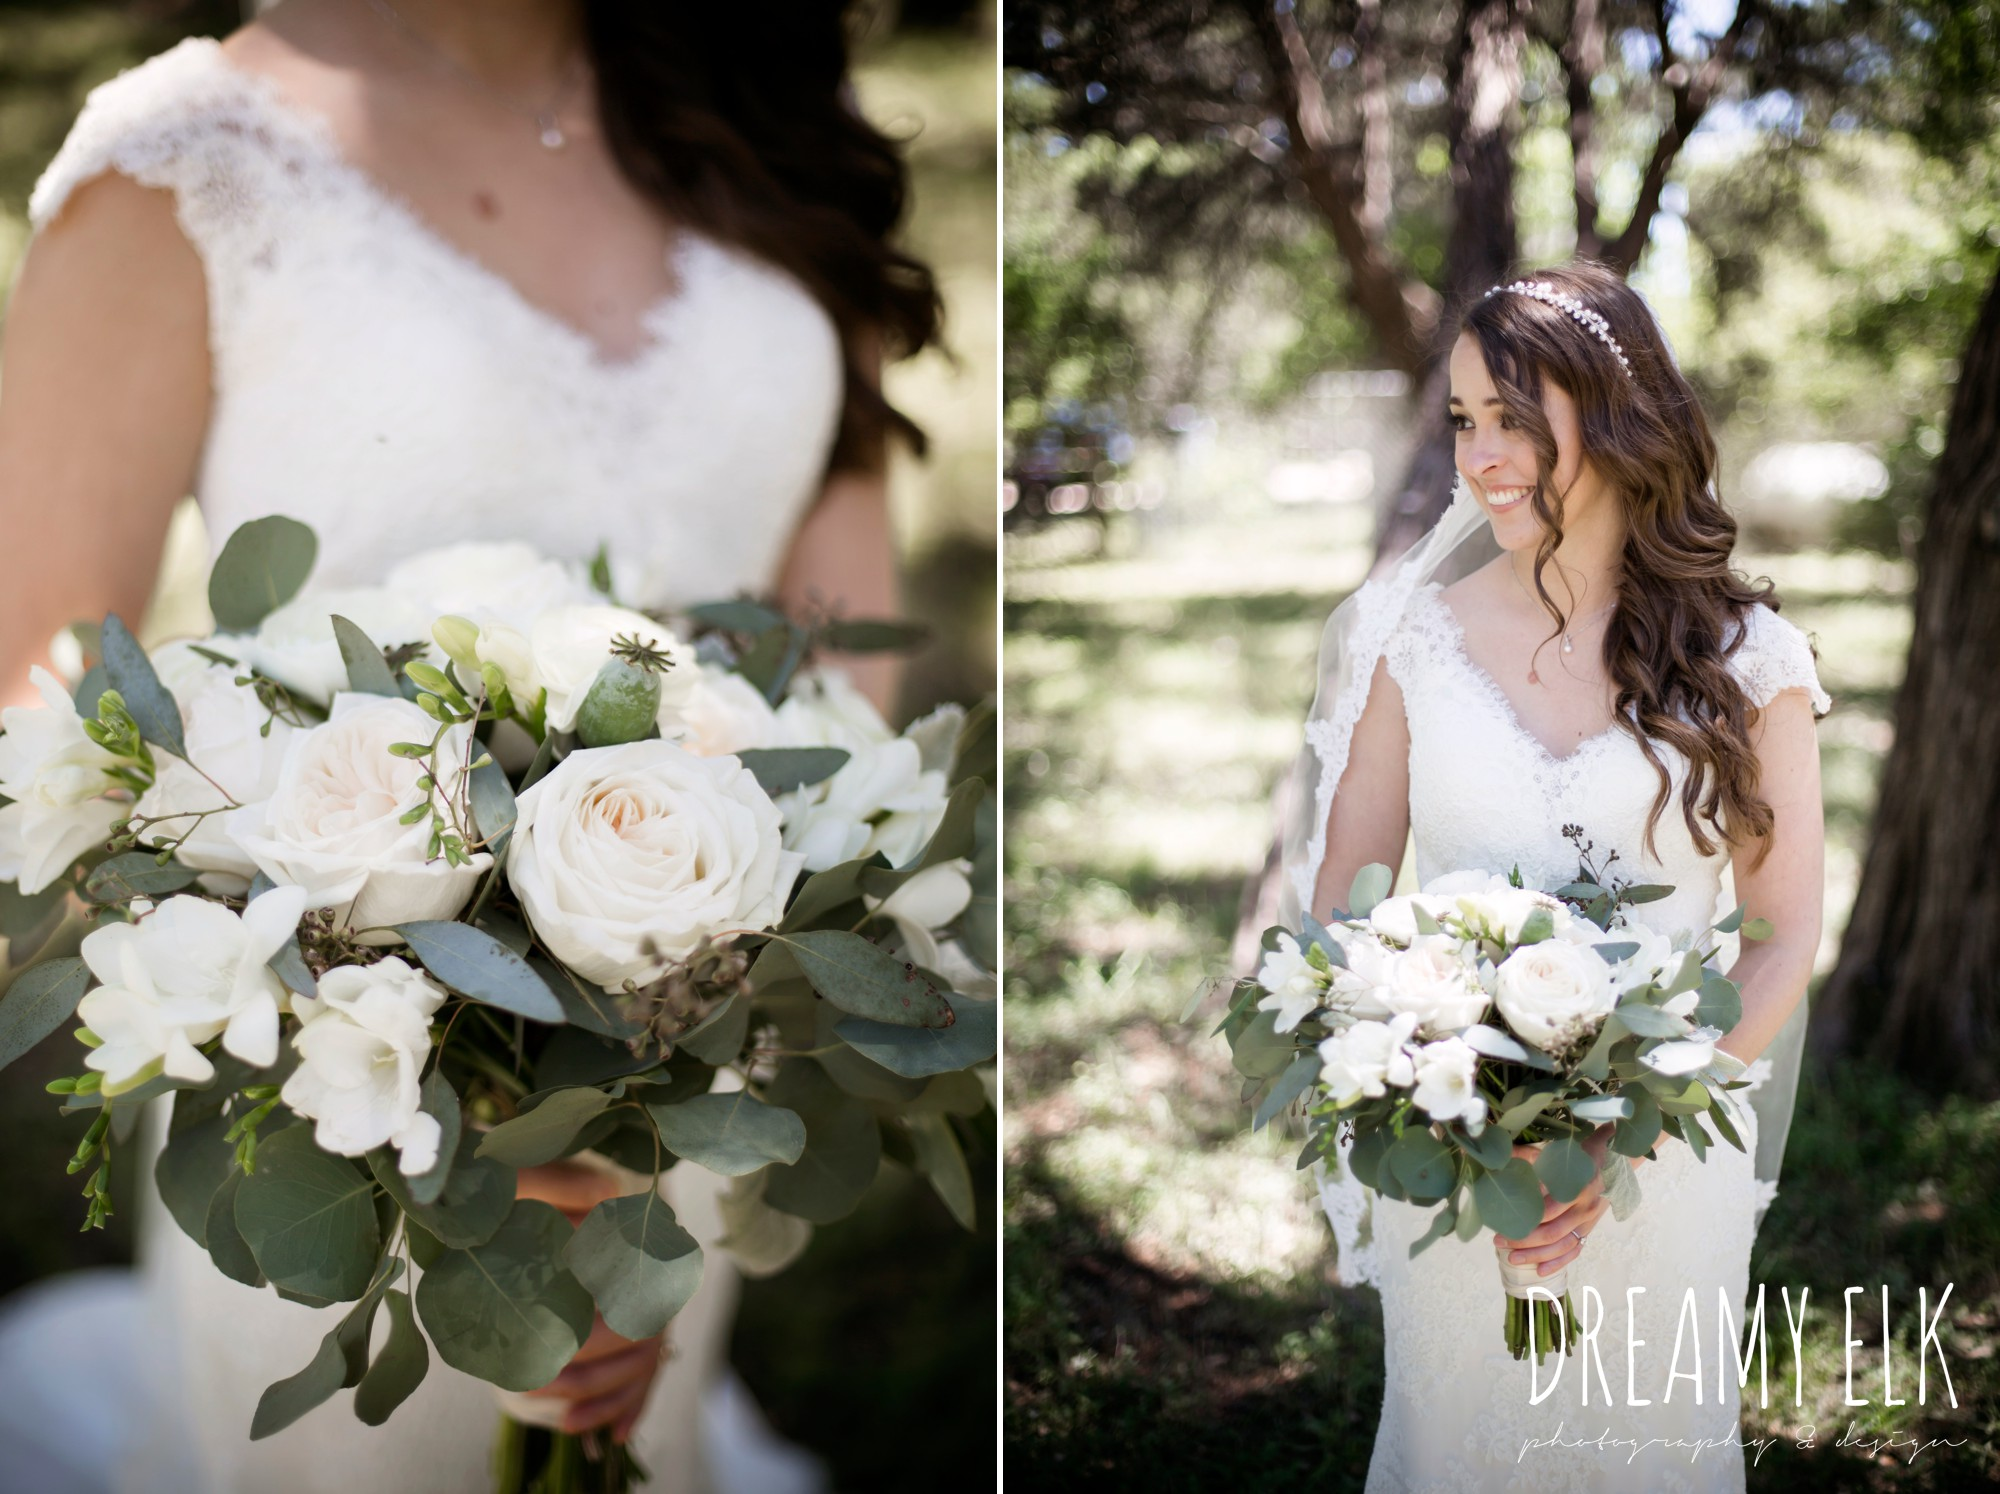 bride, lace wedding dress, lace wedding veil, white wedding bouquet, outdoor spring april wedding photo, chapel dulcinea ceremony, thurman's mansion, dripping springs, texas {dreamy elk photography and design}